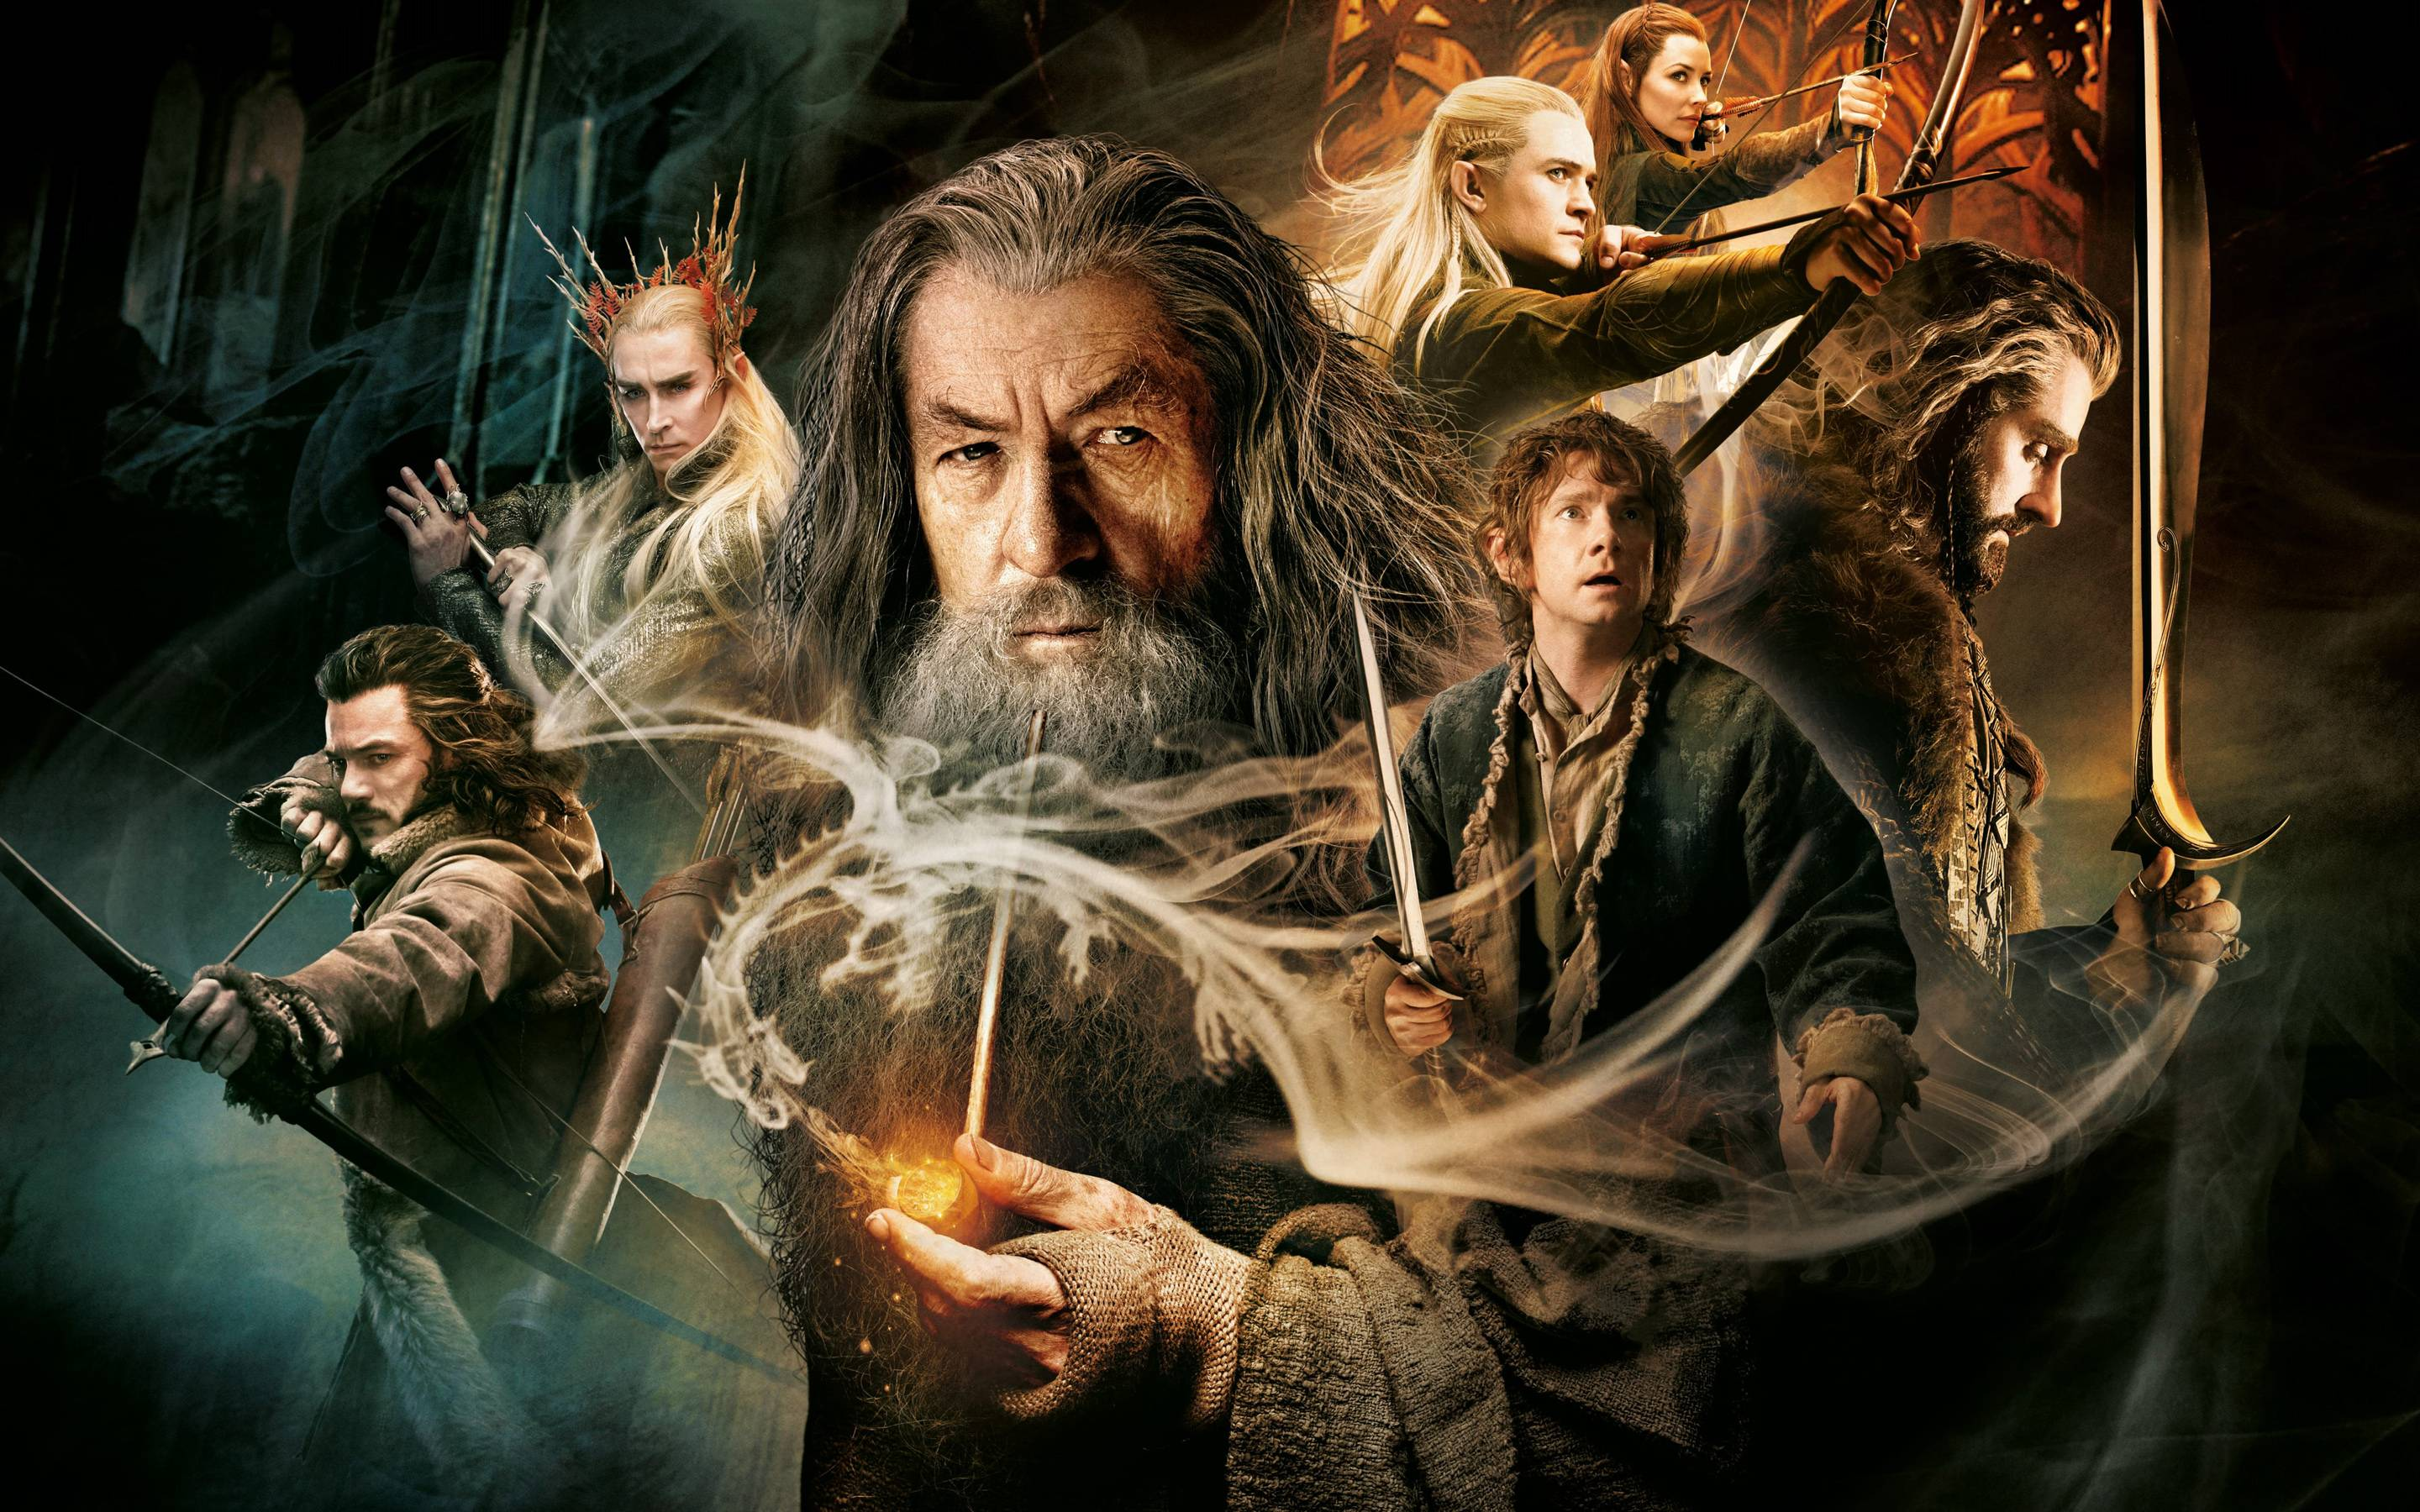 The Hobbit Wallpapers 2880x1800 CY9M457   4USkY 2880x1800